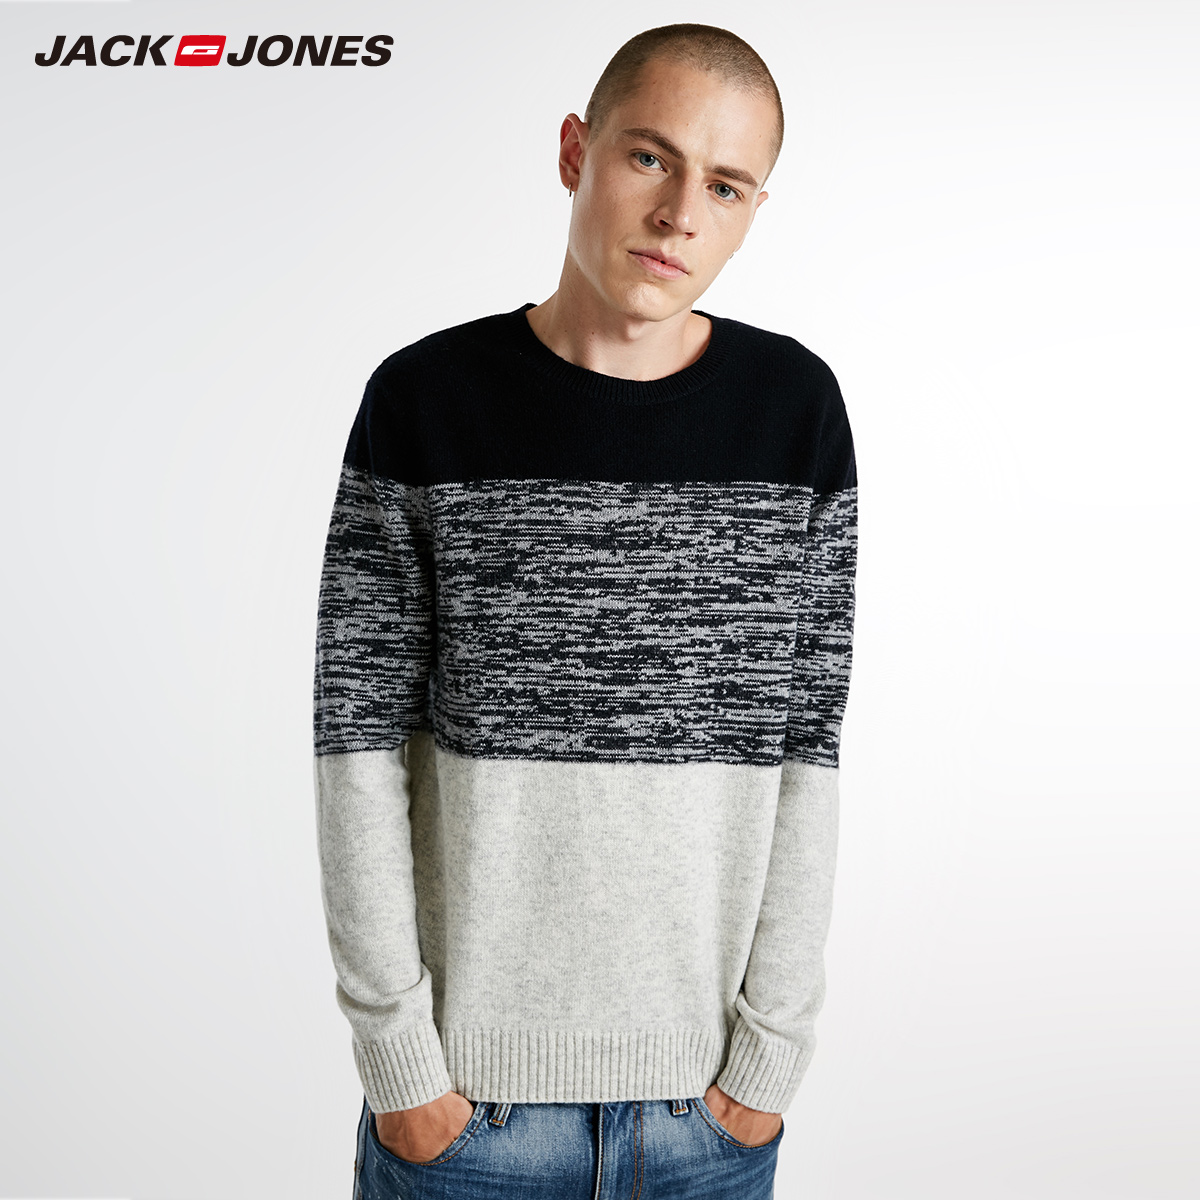 JackJones Men's Winter Color mixture Woven Round Collar Tops Casual Sweater Men's Slim Fit Brand Knitted Pullovers C218324531-in Pullovers from Men's Clothing    1